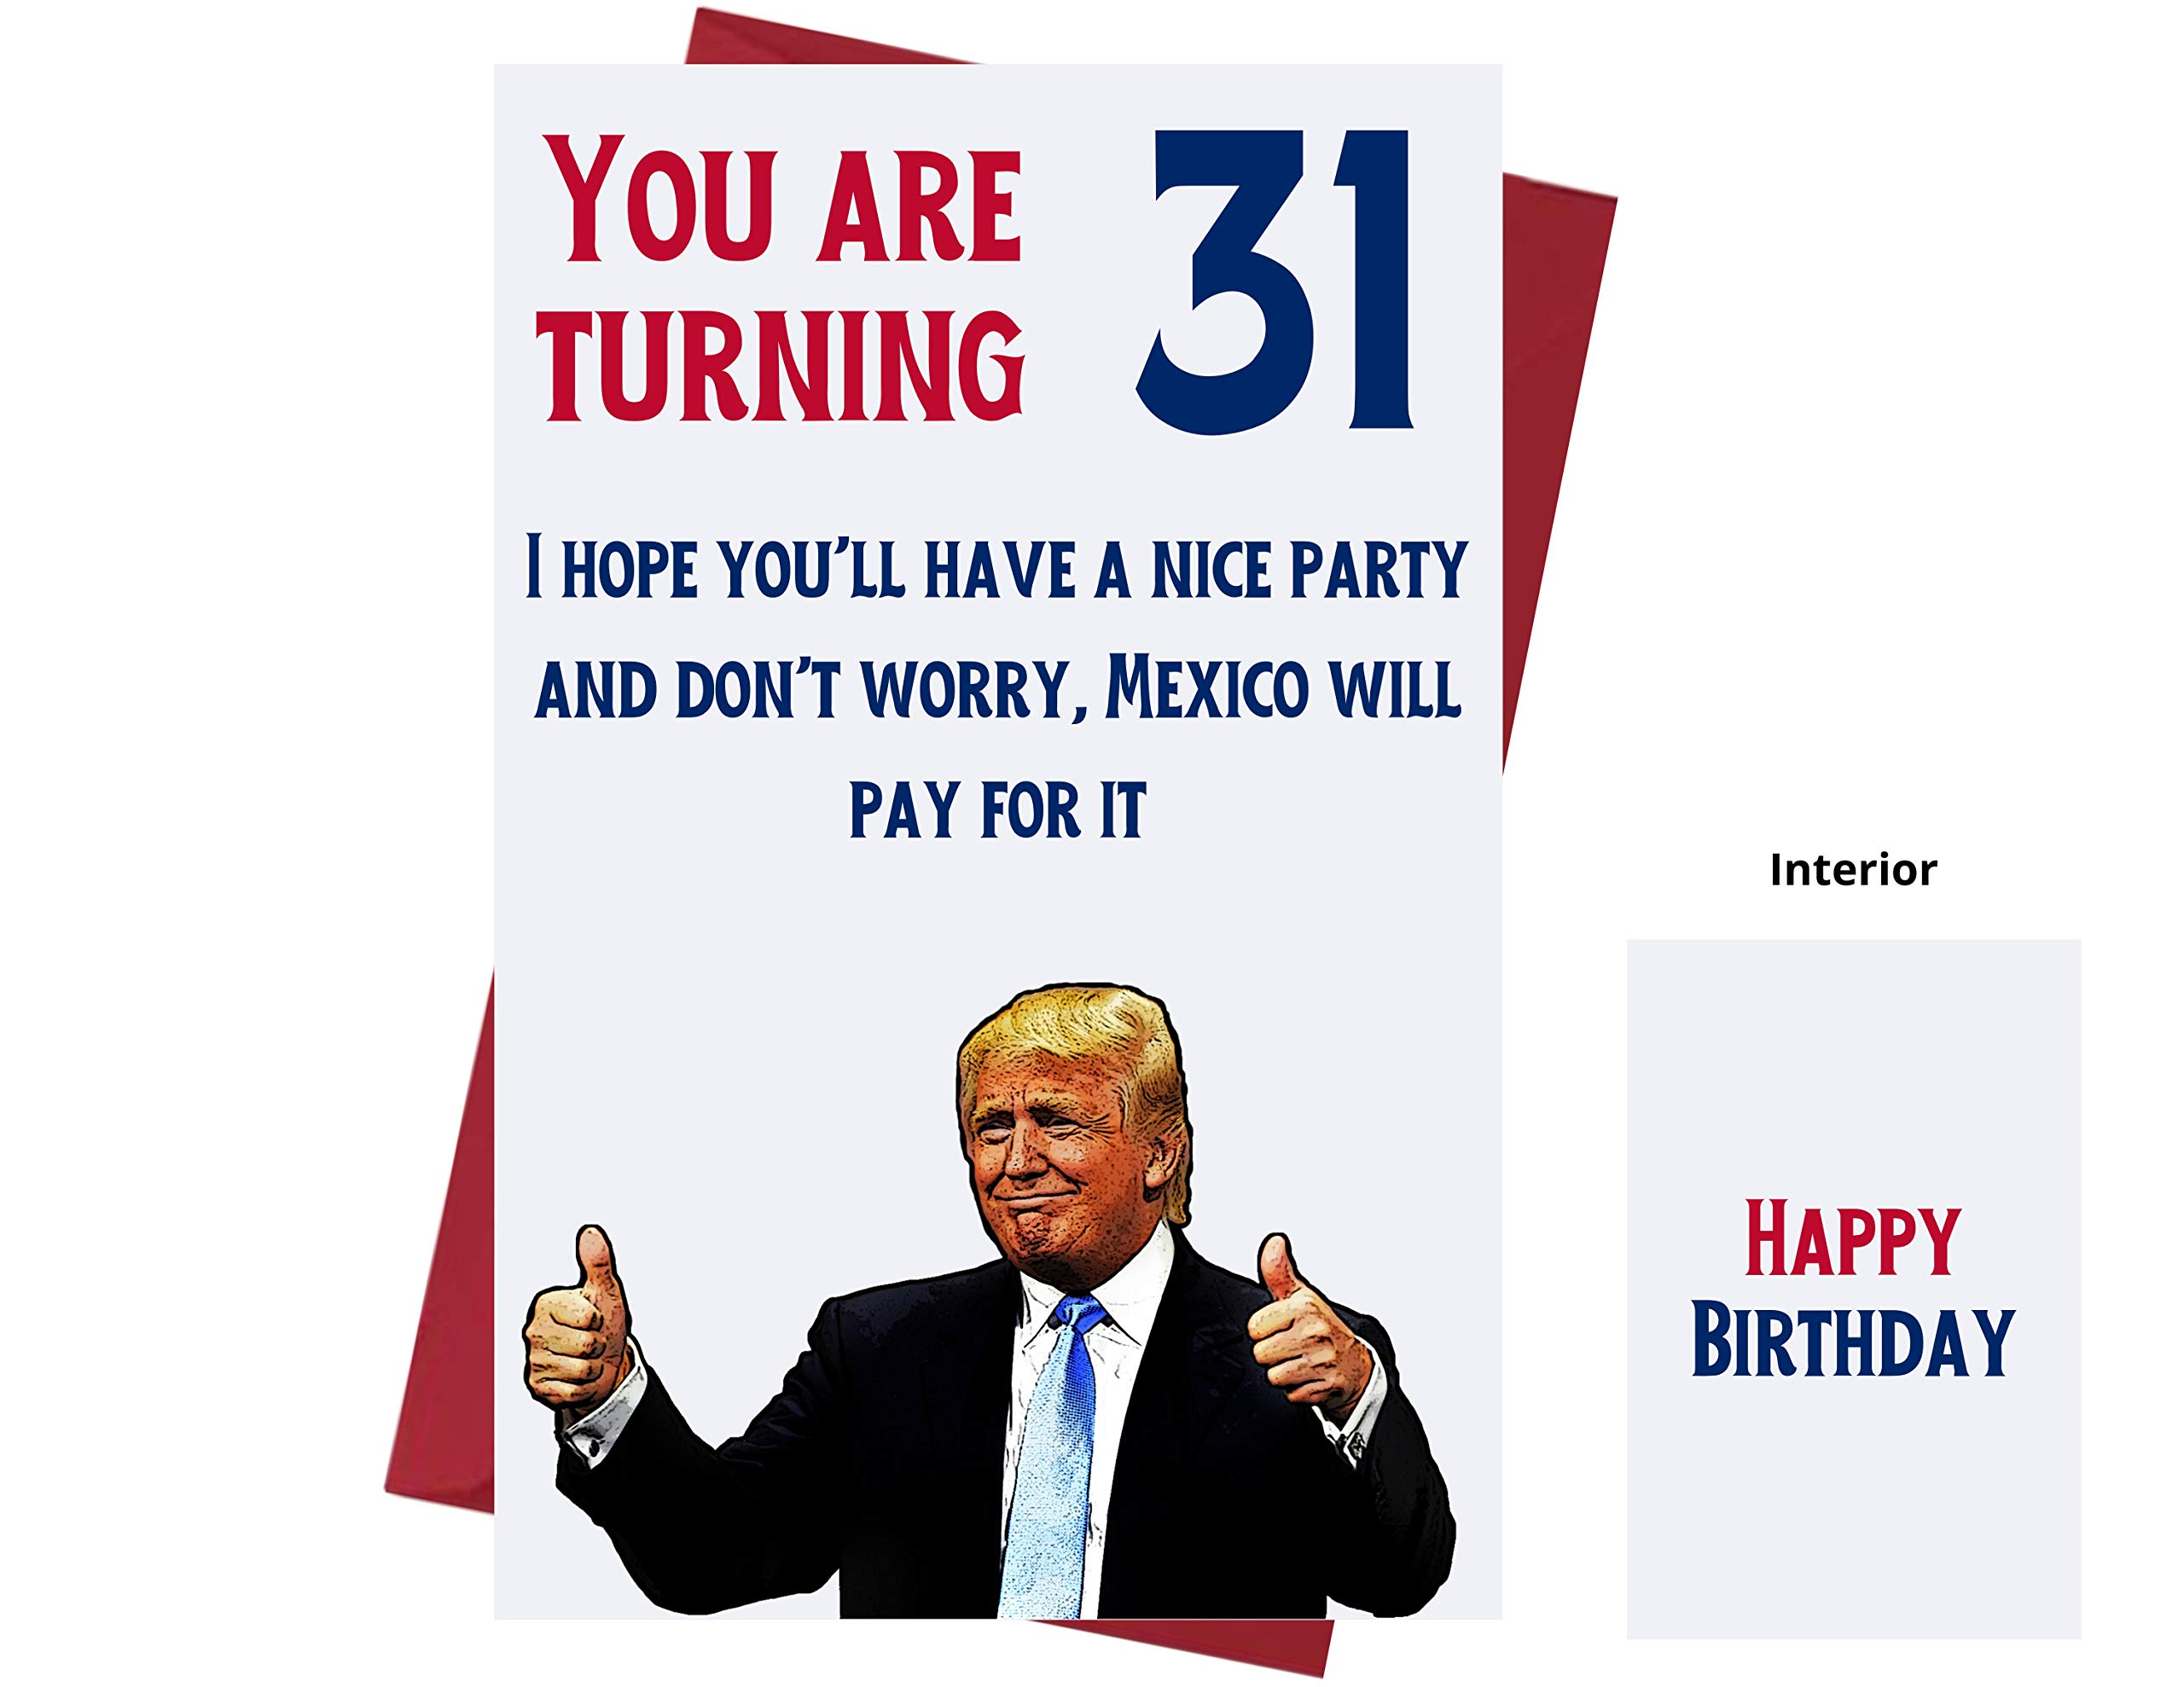 Let's Make 31 Great Again – Donald Trump – Sarcasm 31st Birthday Cards for Women, Men, Friends, Coworkers, Etc. – Donald Trump Birthday Cards 31 Years Old – 31st Birthday Cards 31st Anniversary